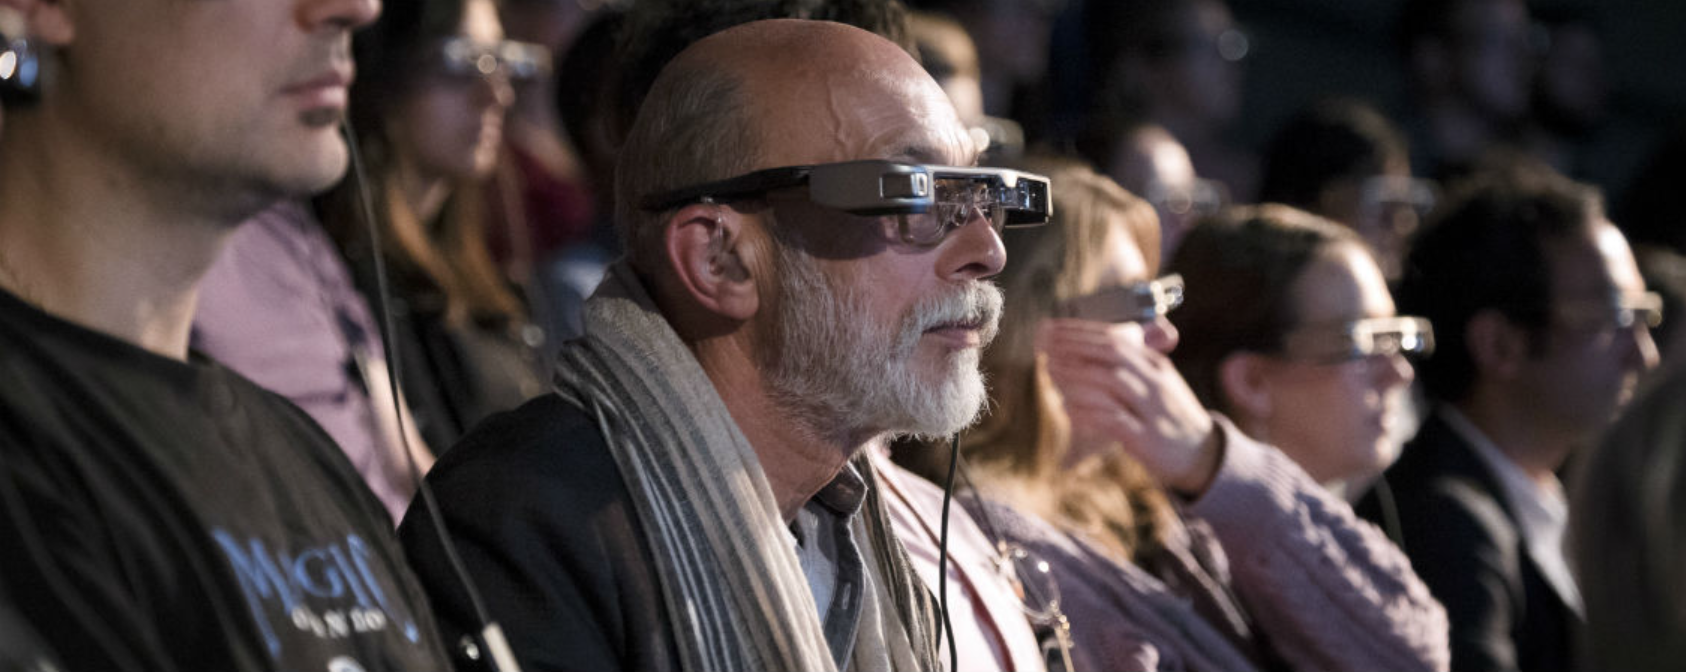 theatre audience wearing smart caption glasses